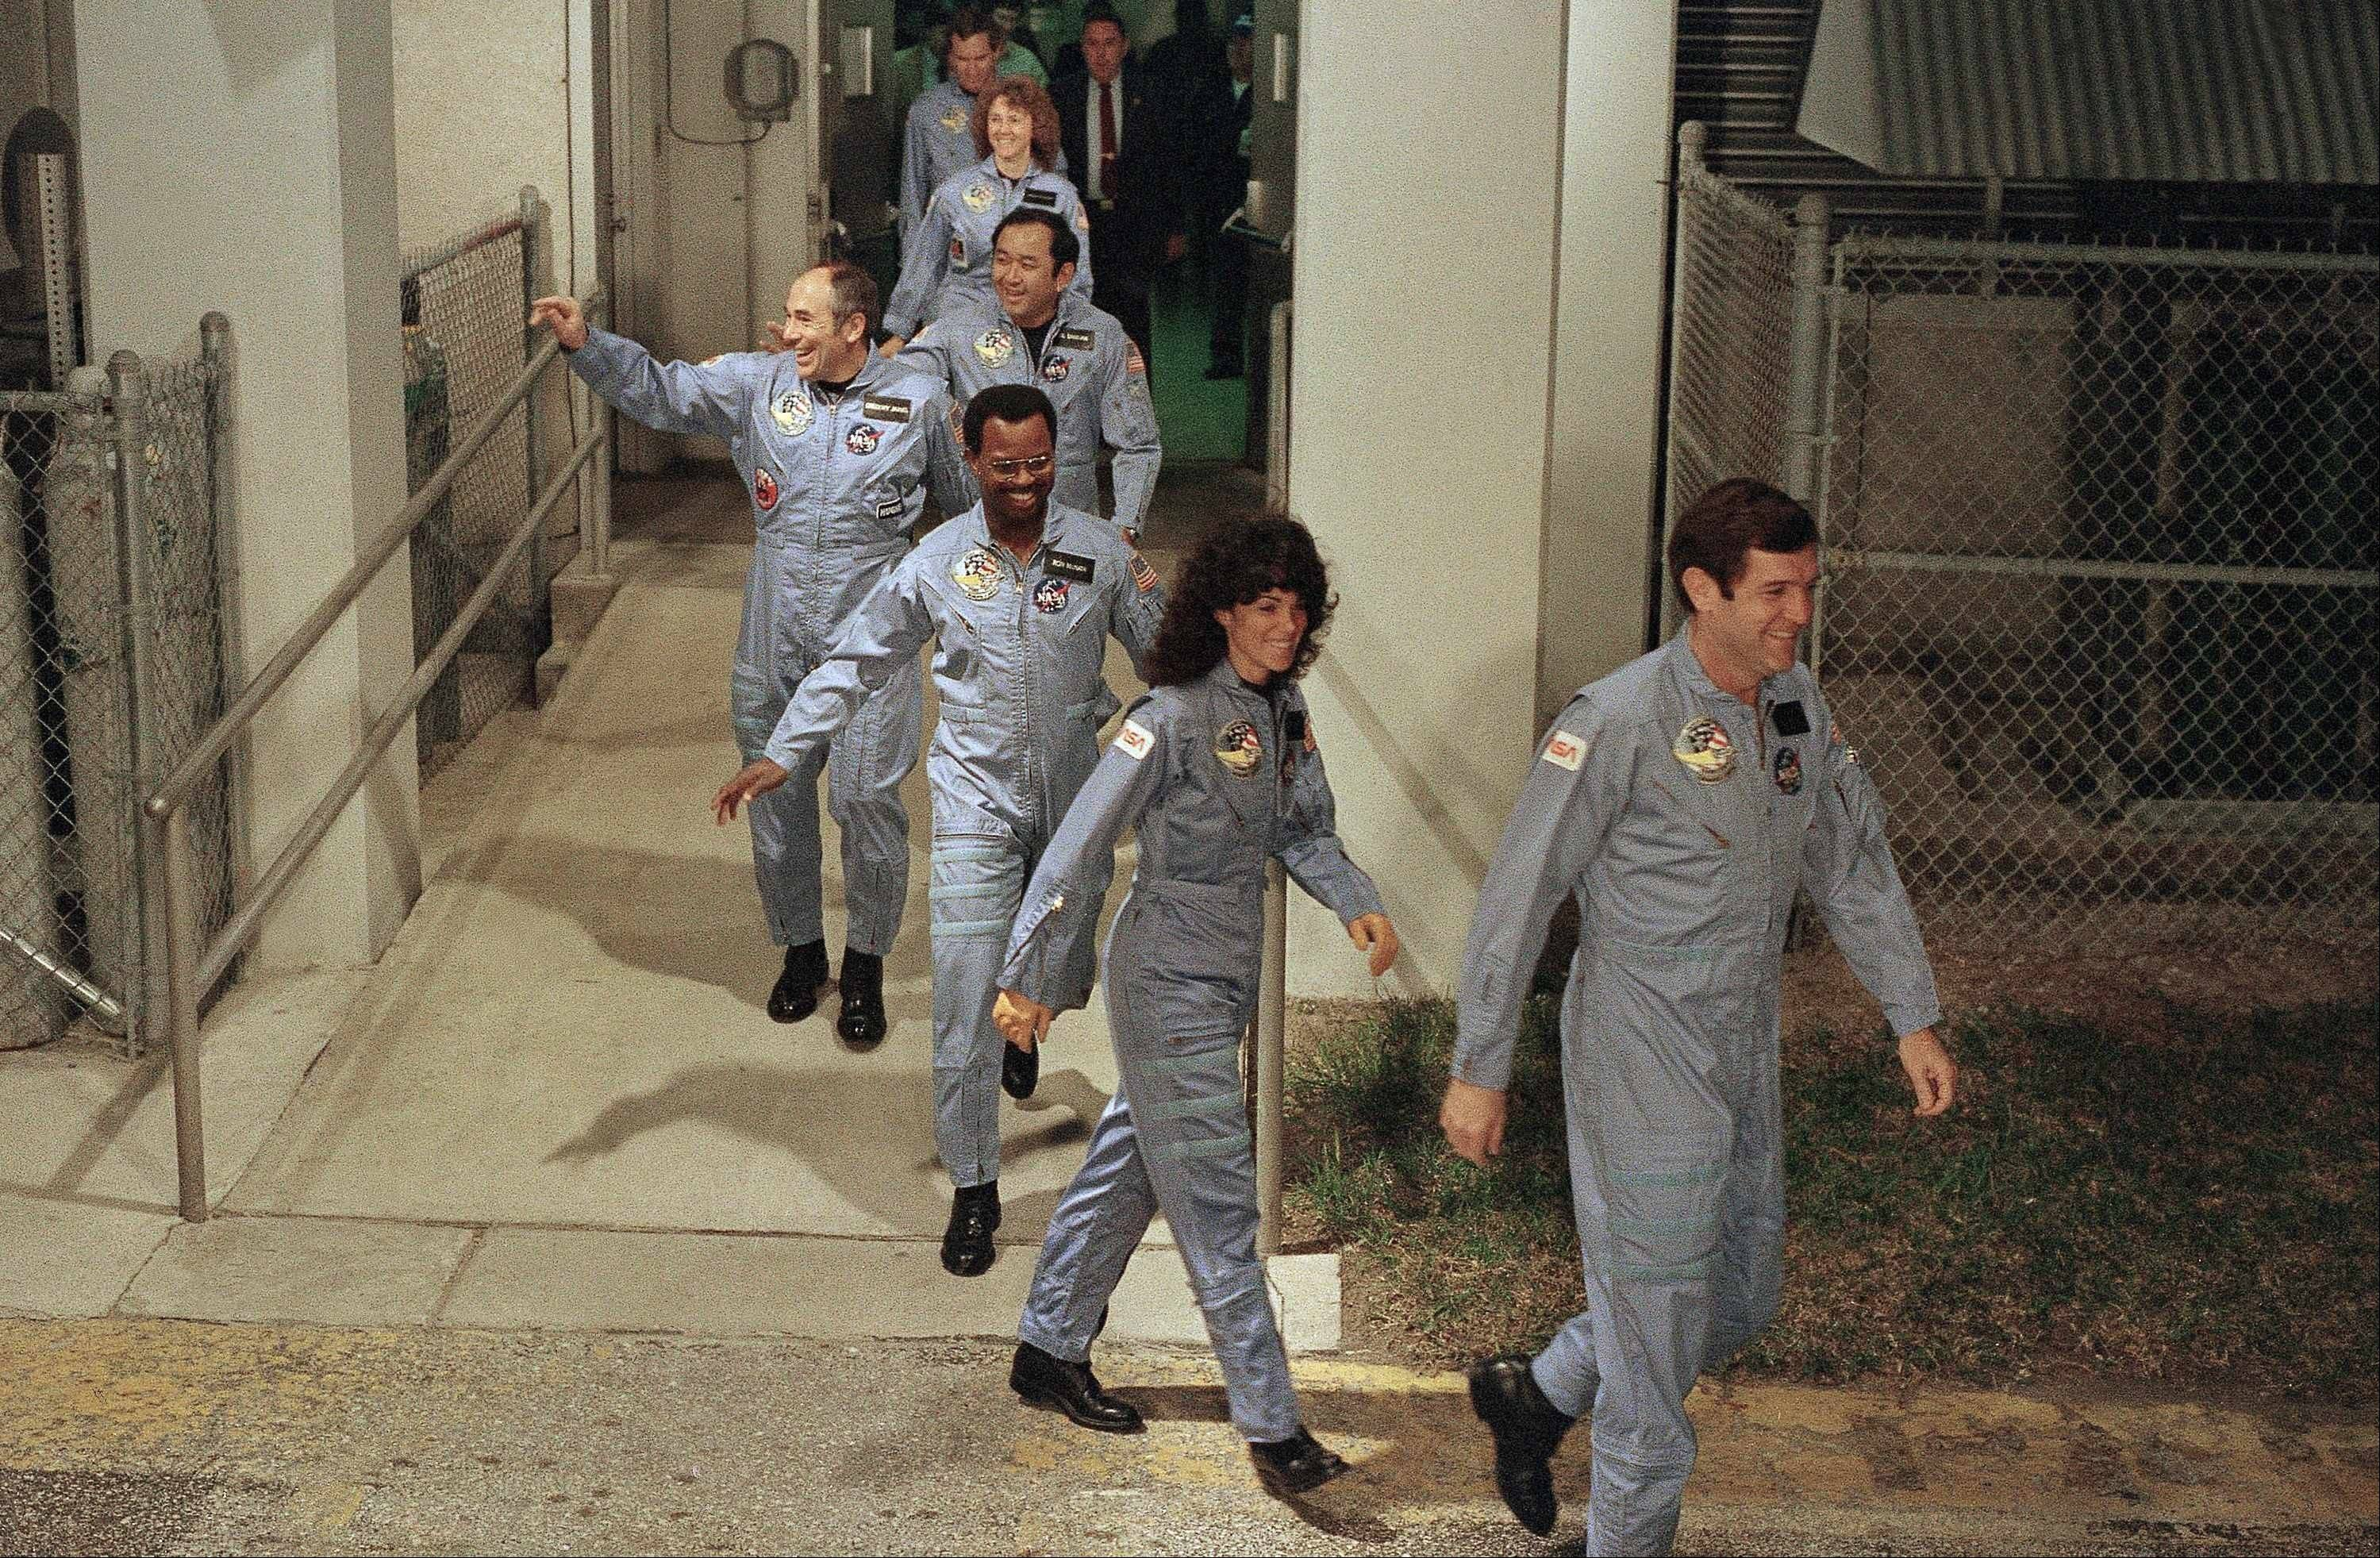 In this Jan. 27, 1986 file picture, the crew for the space shuttle Challenger leaves their quarters for the launchpad at Kennedy Space Center in Cape Canaveral, Fla. From foreground are commander Francis Scobee, Mission Spl. Judith Resnik, Mission Spl. Ronald McNair, Payload Spl. Gregory Jarvis, Mission Spl. Ellison Onizuka, teacher Christa McAuliffe and pilot Michael Smith.